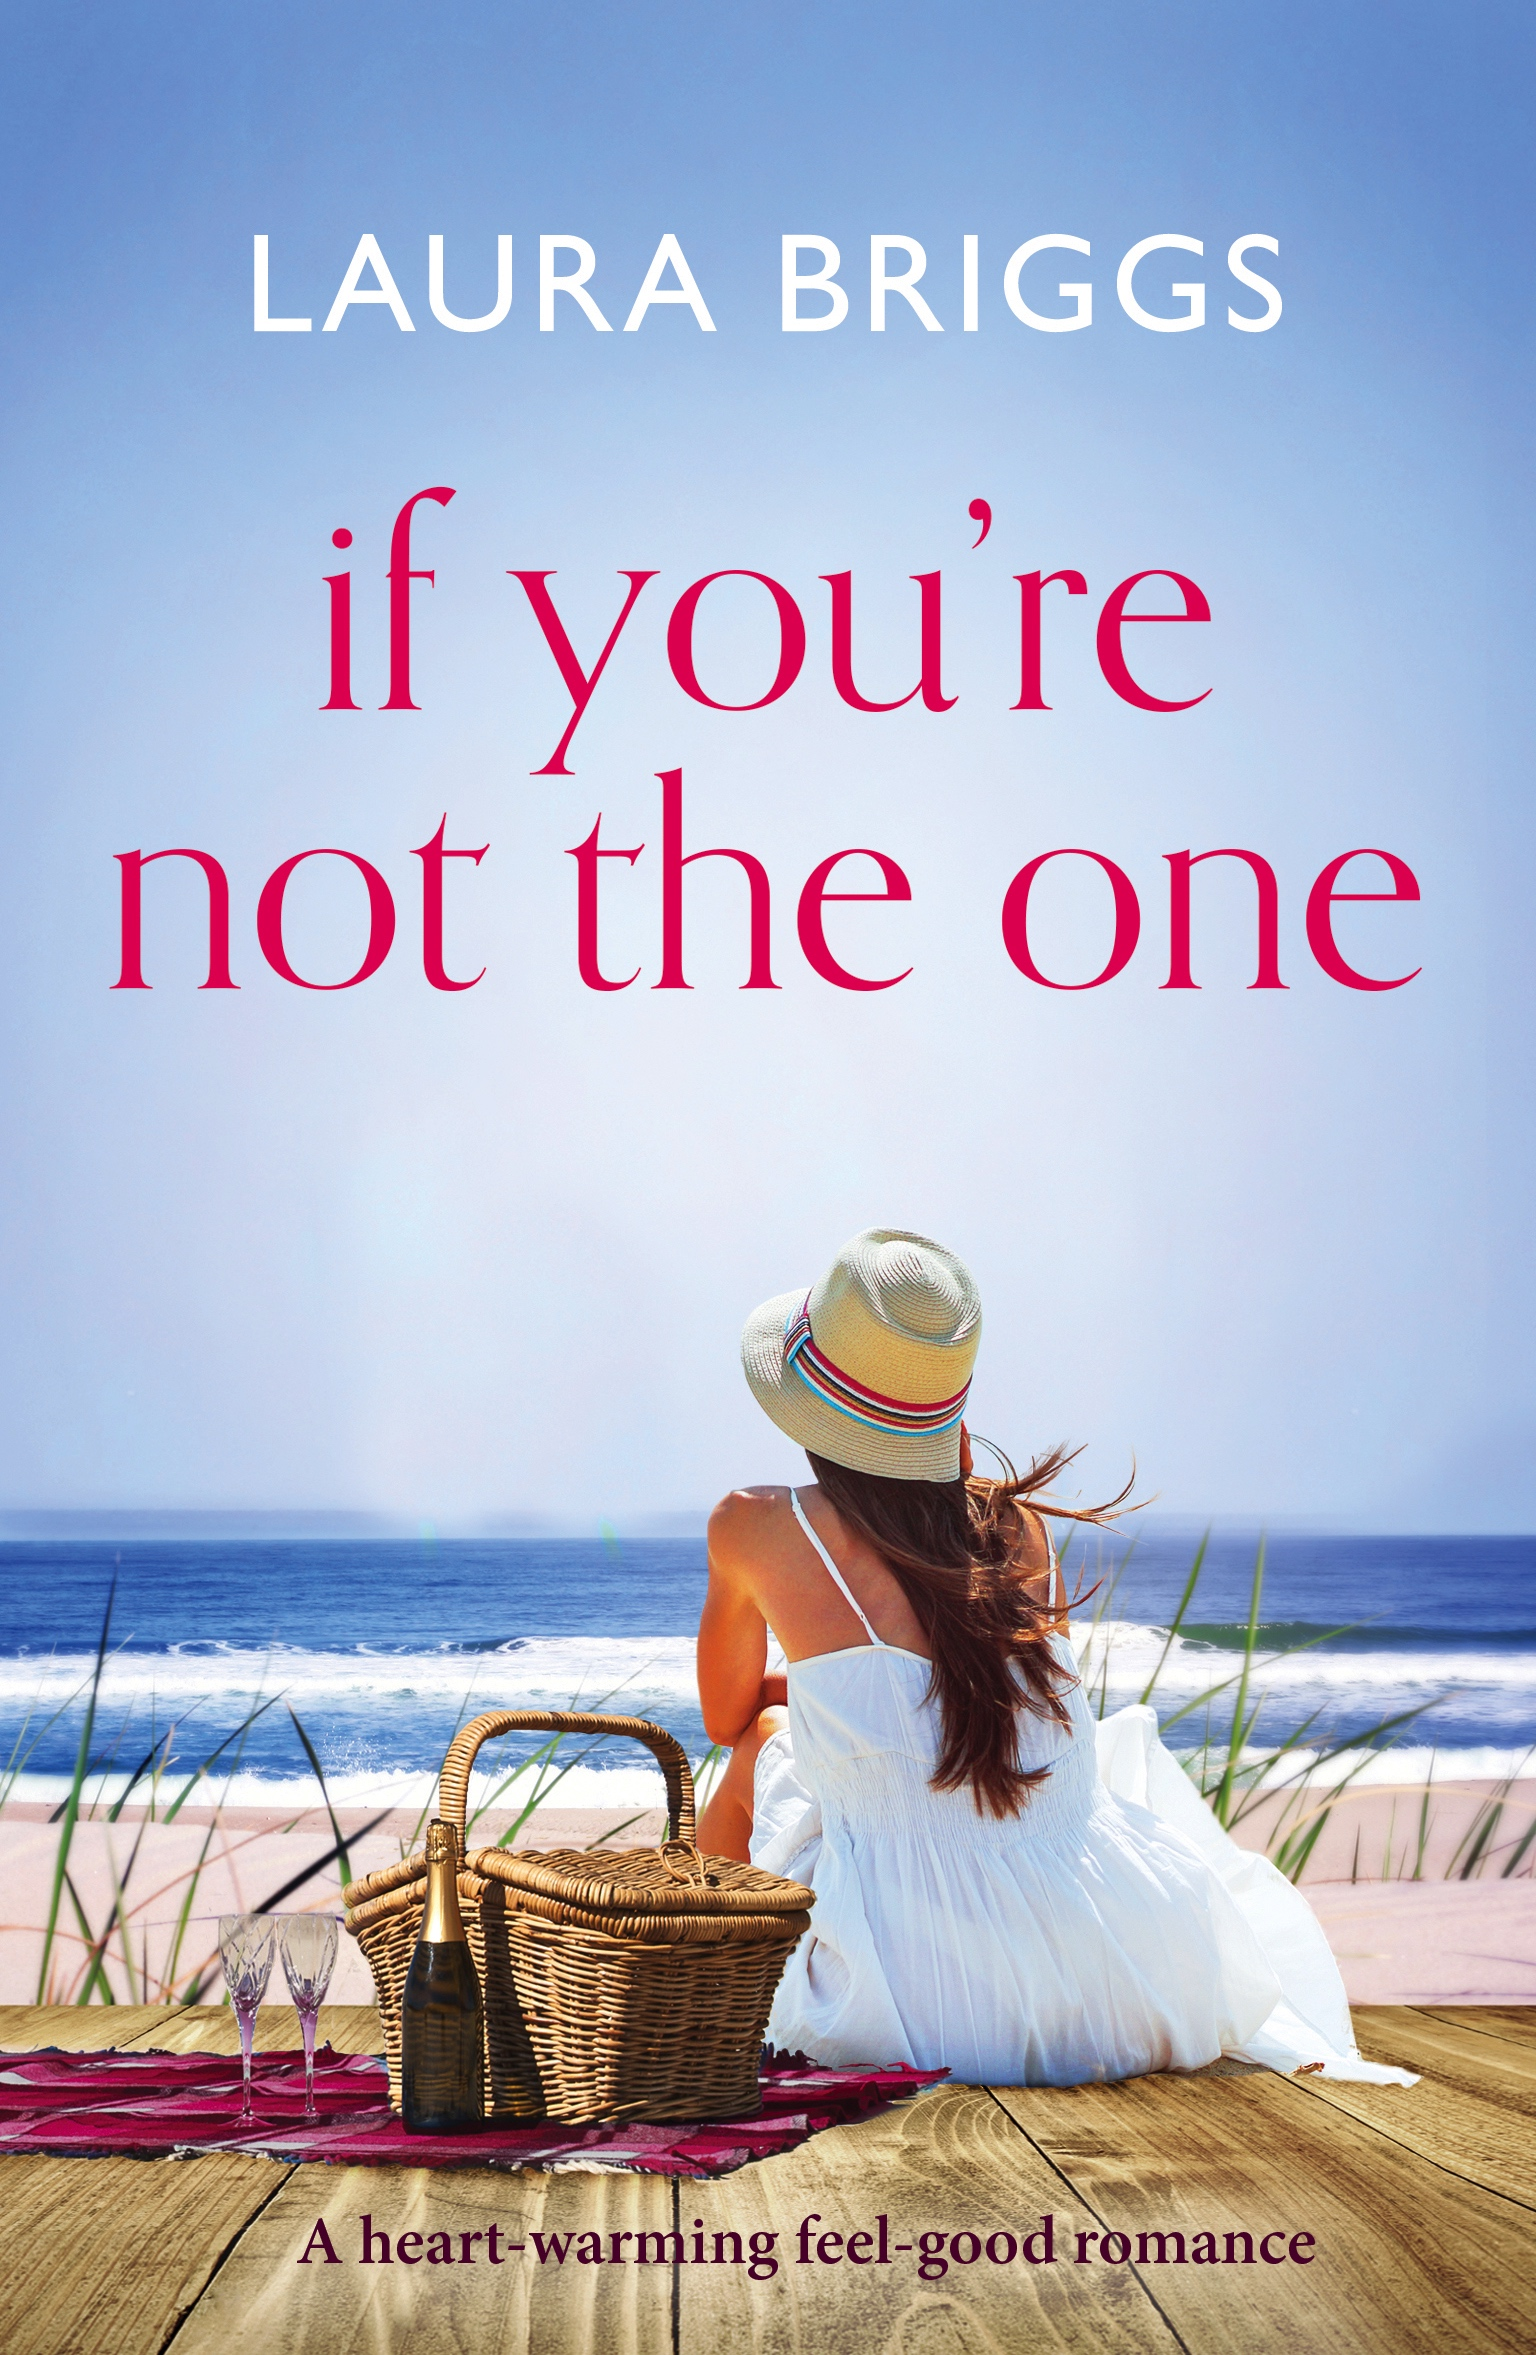 #BookReview of If You're Not the One by Laura Briggs @PaperDollWrites @bookouture @nholten40 #IfYoureNotTheOne #NetGalley